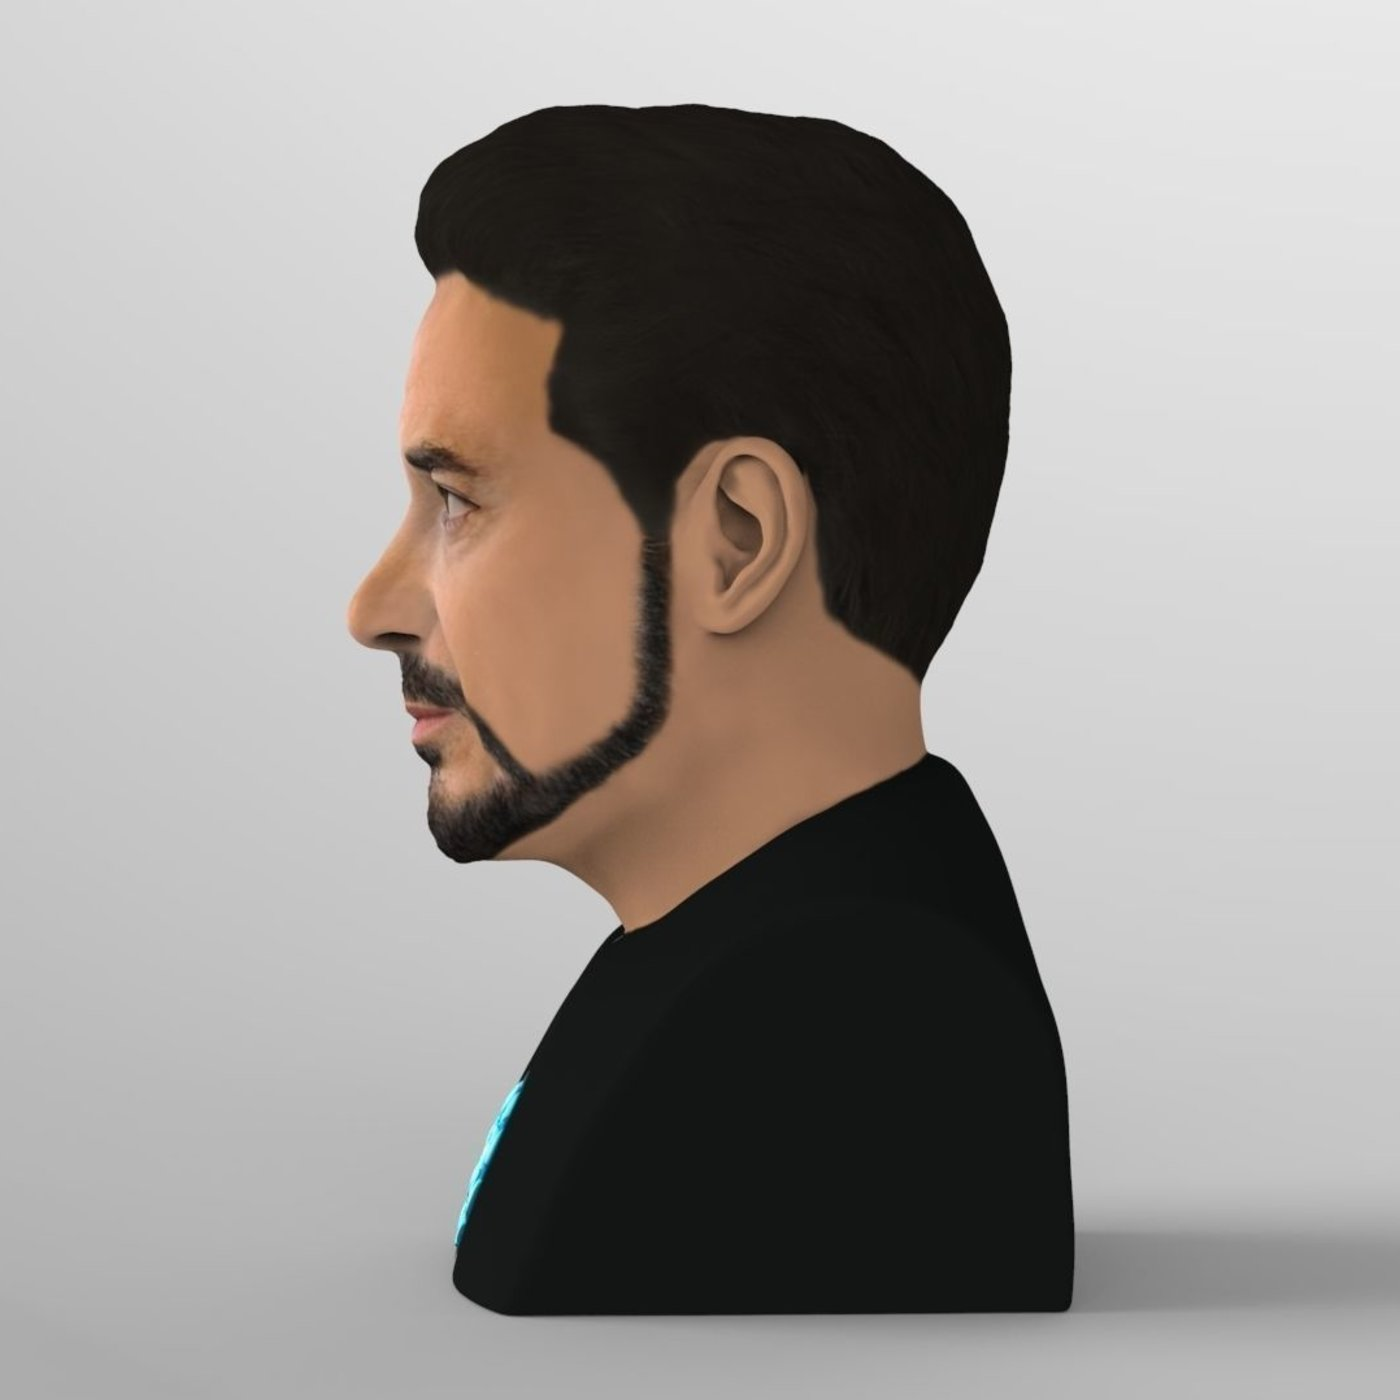 Tony Stark bust for full color 3D printing